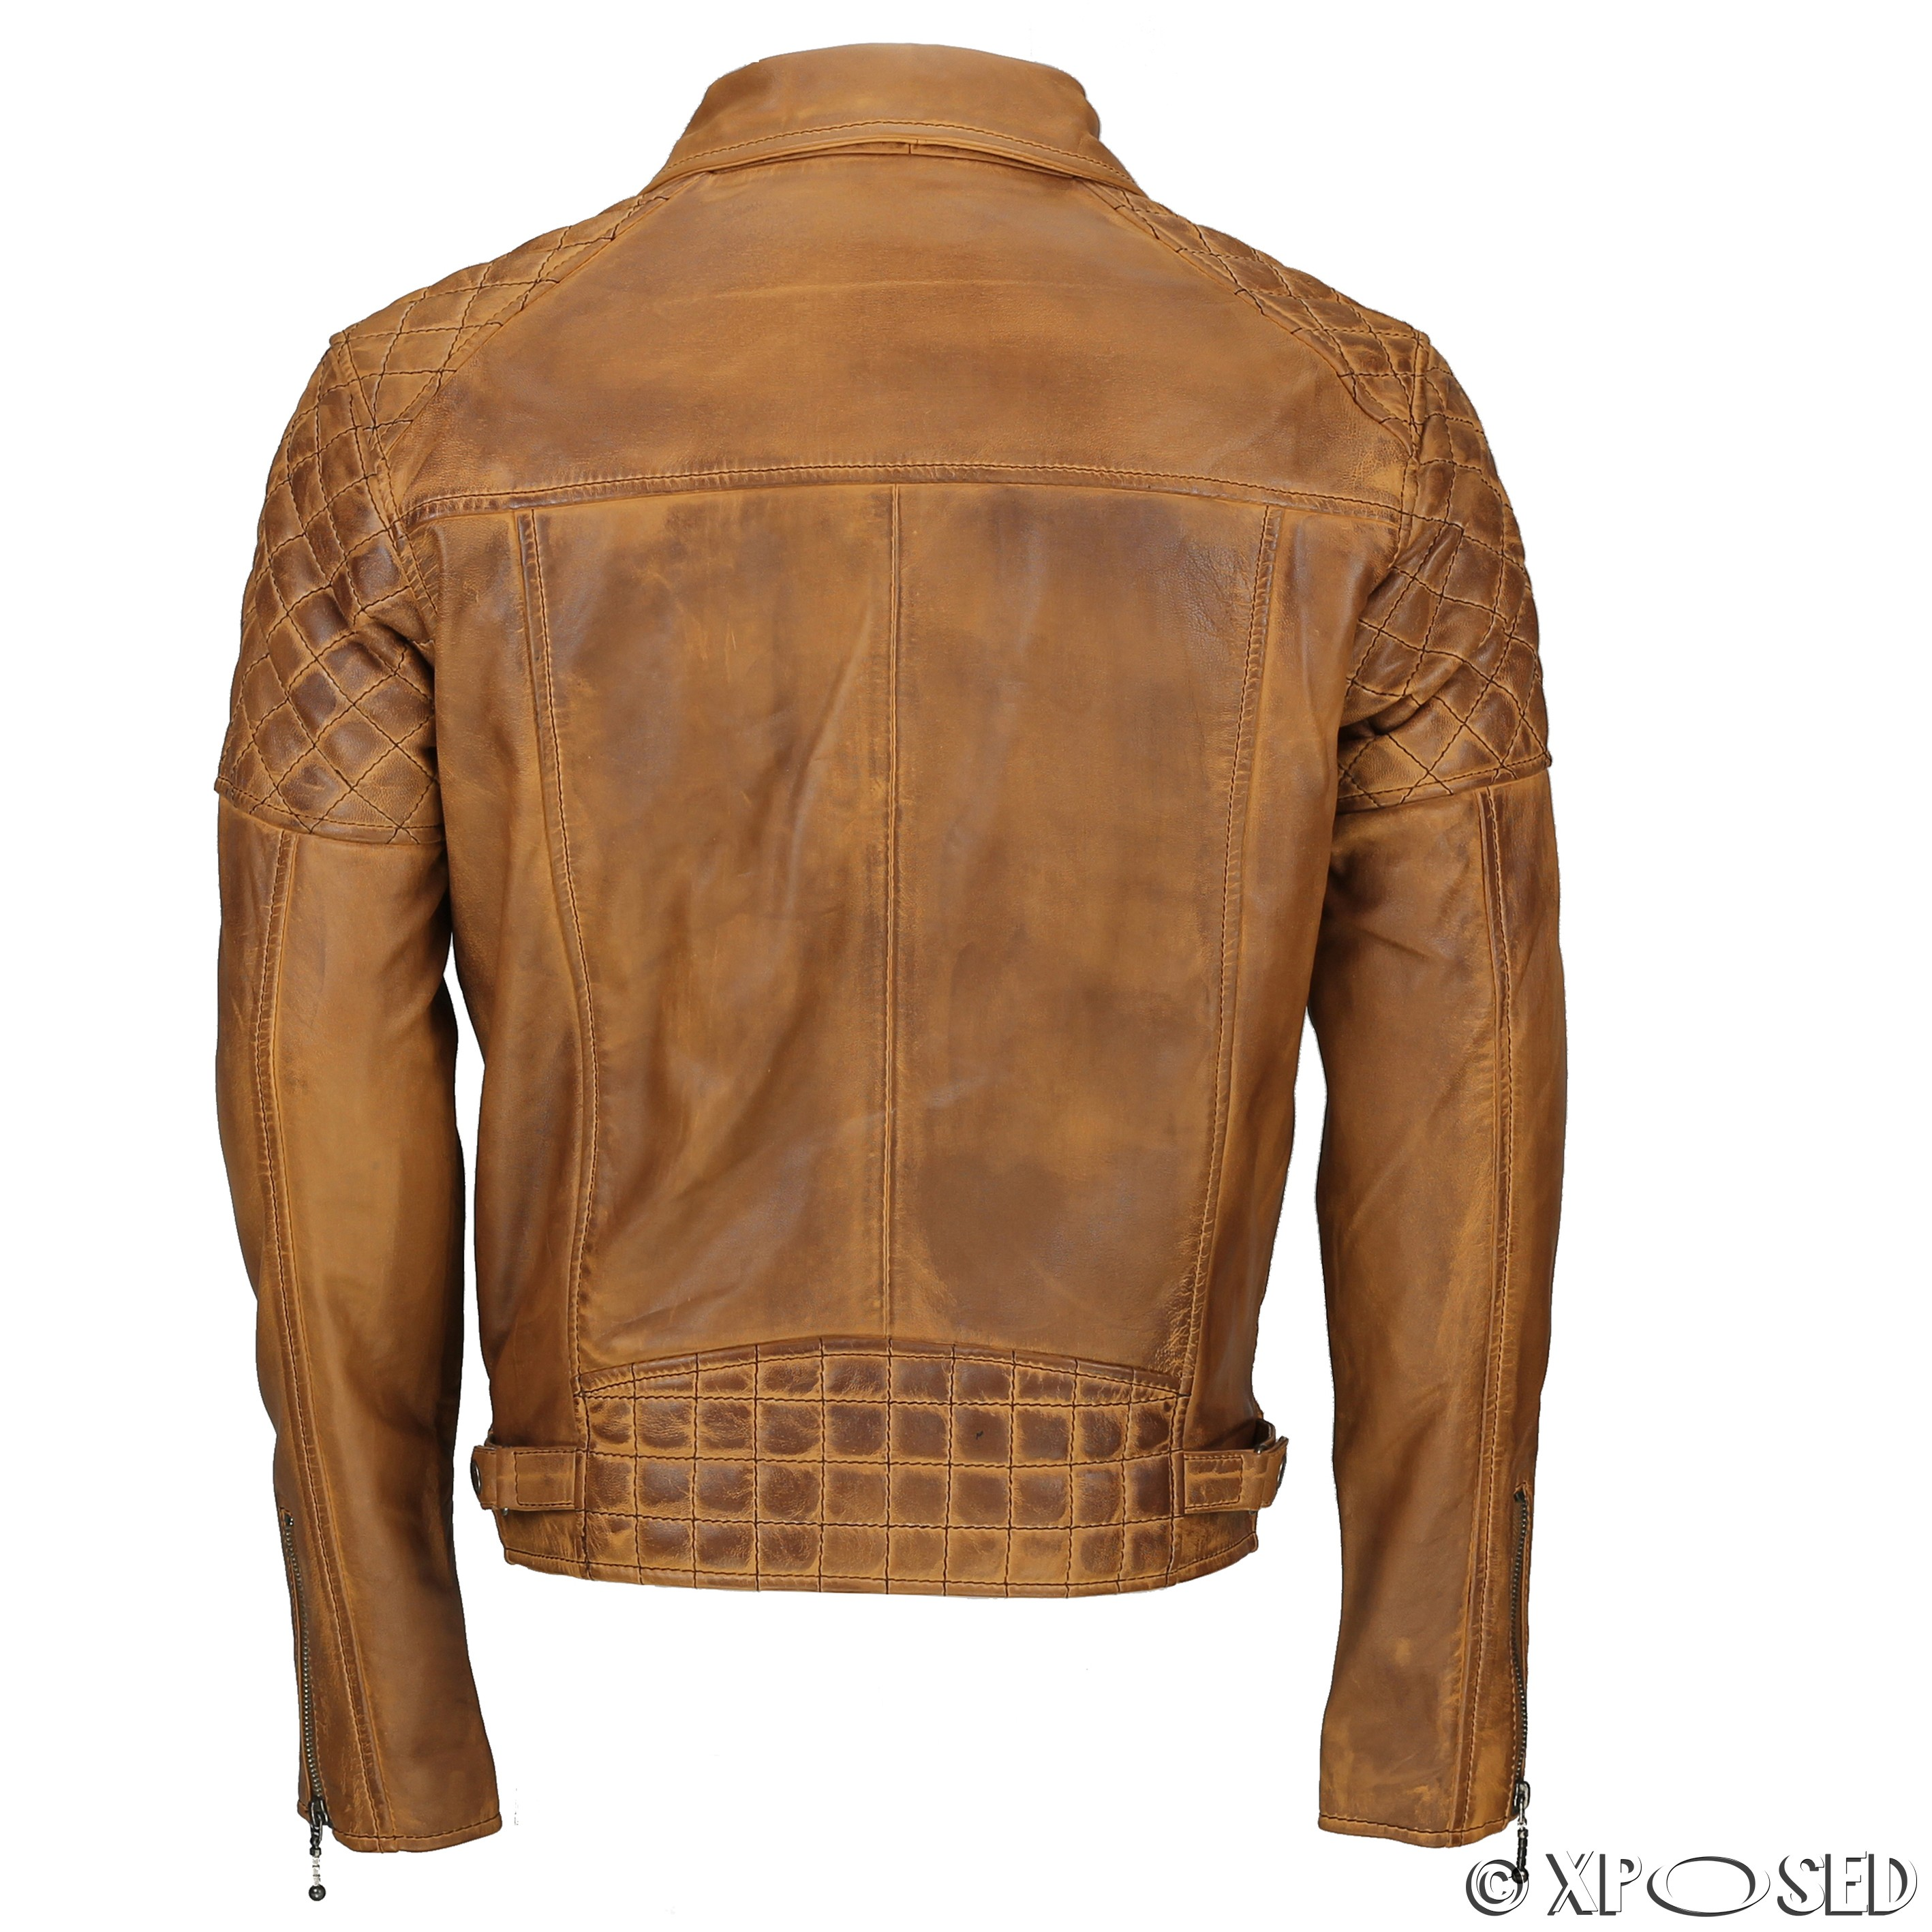 Vintage leather motorcycle jackets for sale